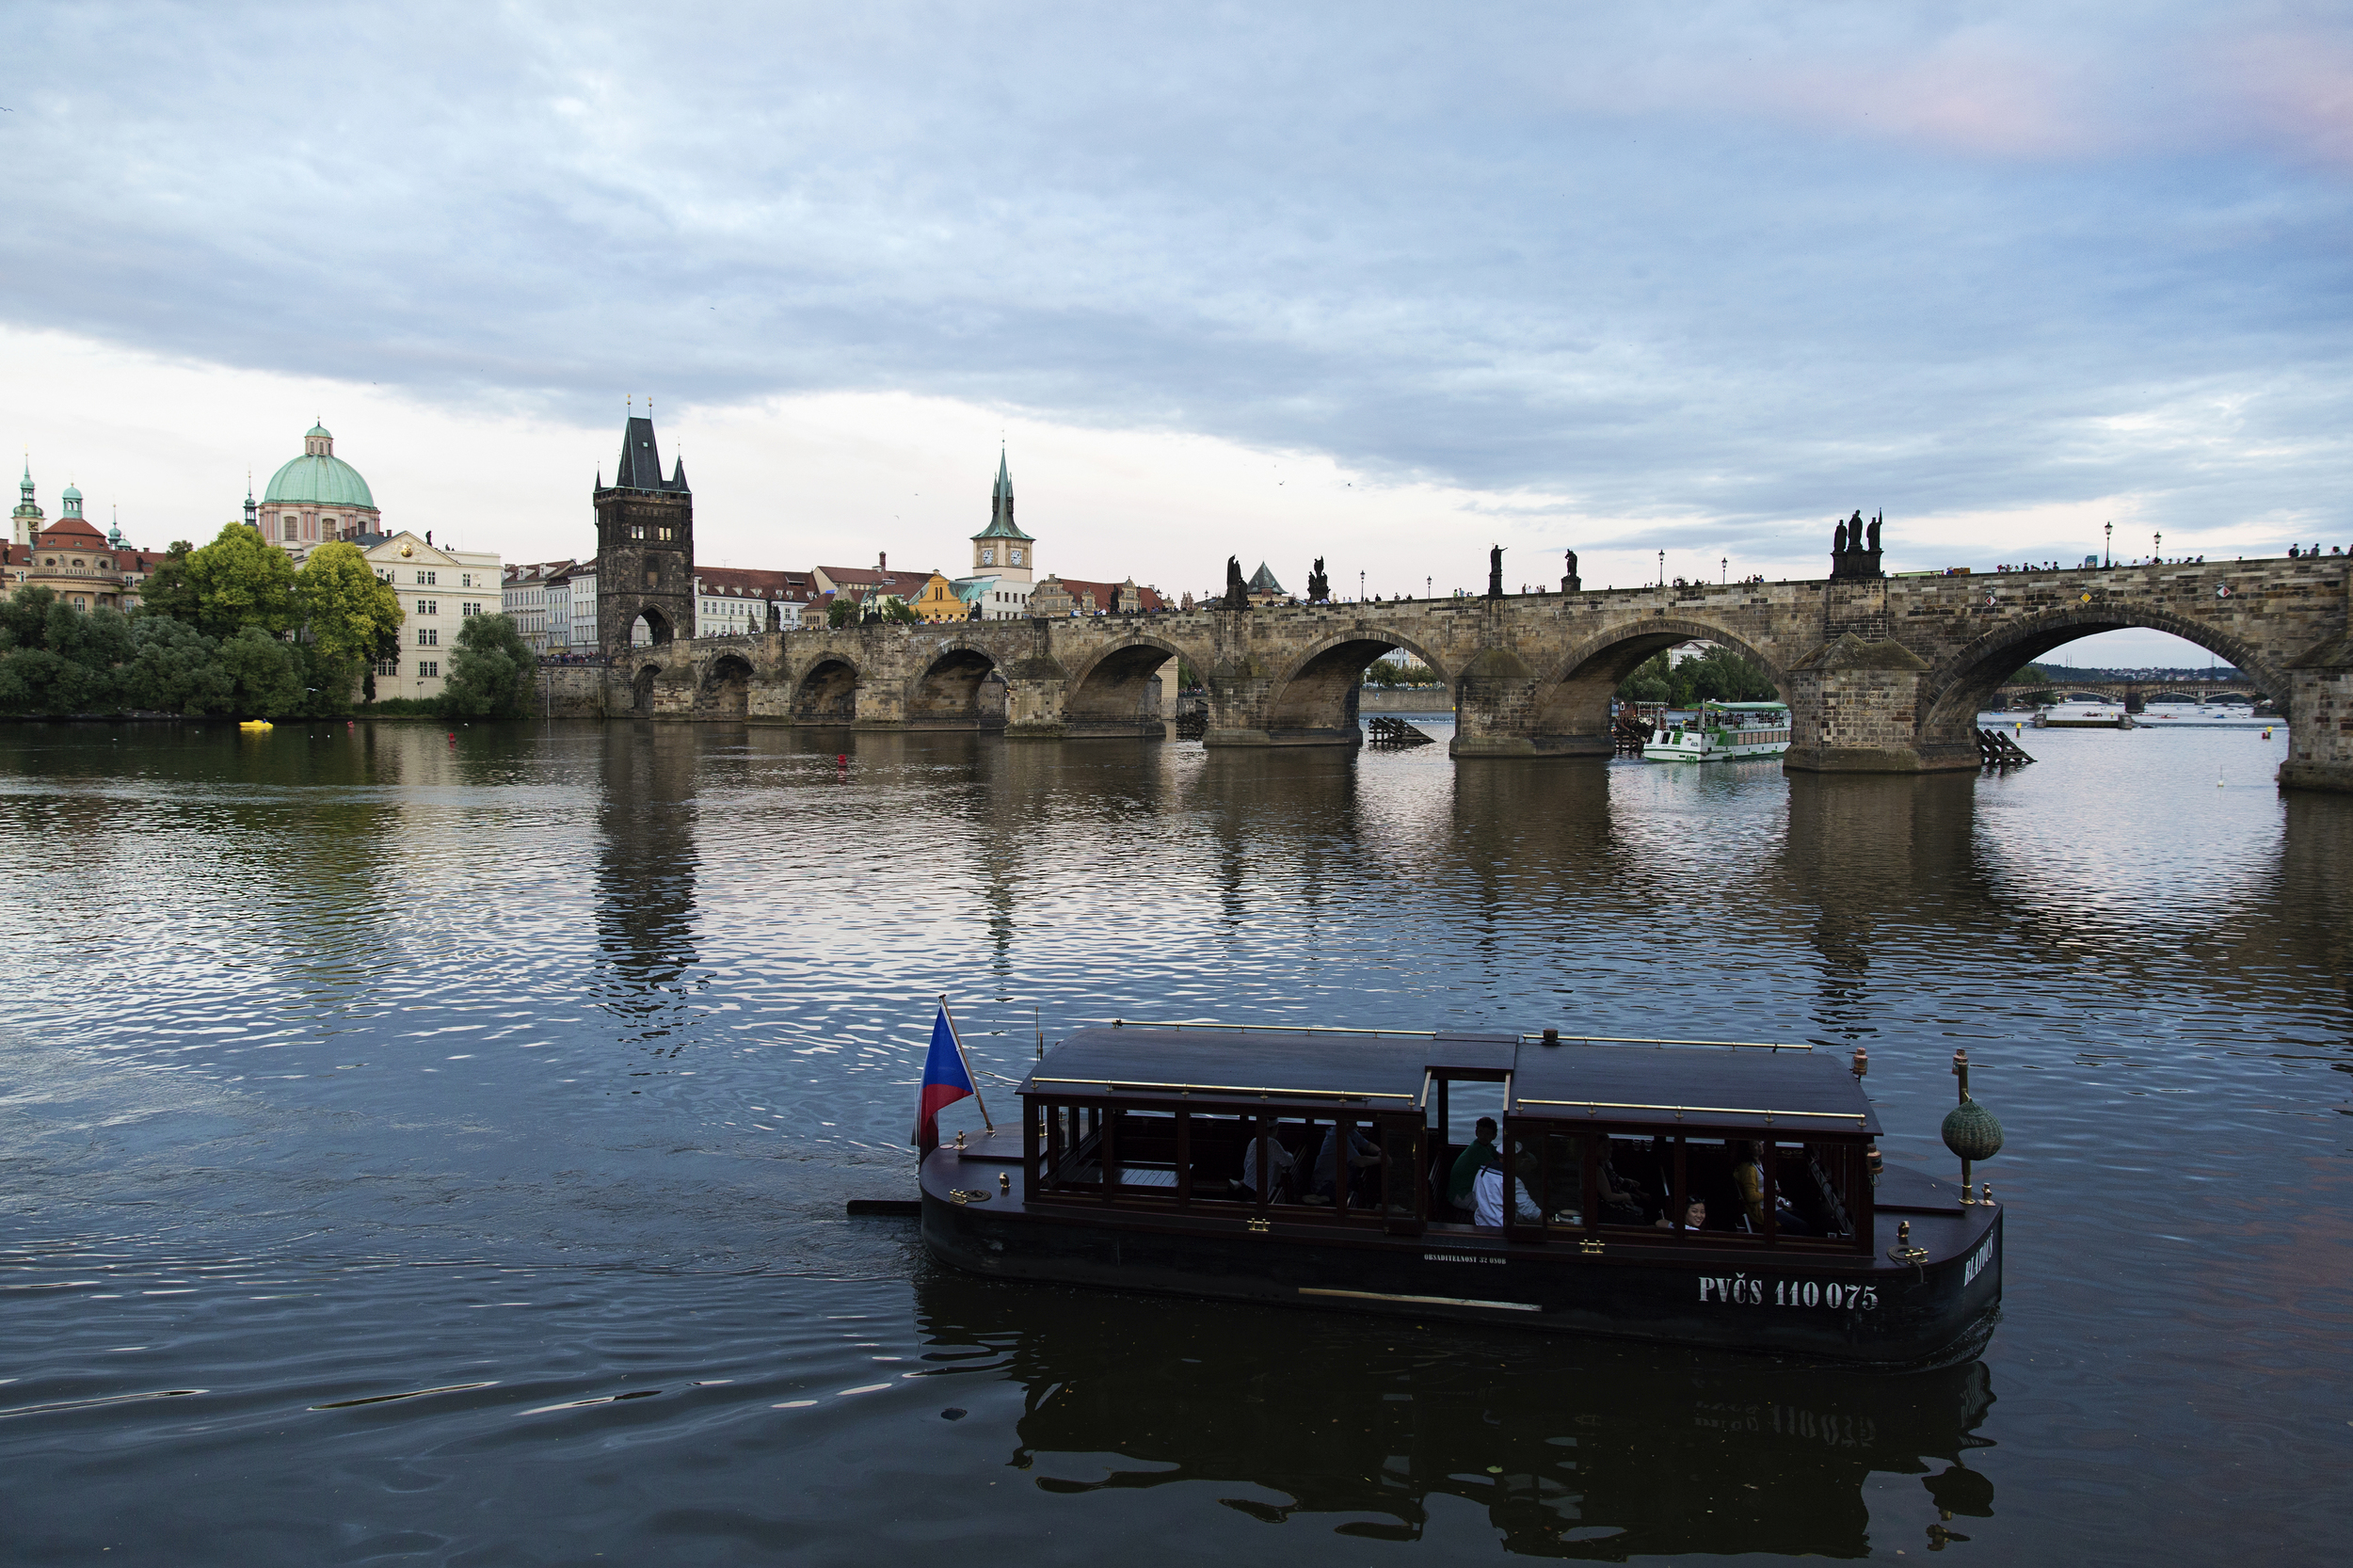 A boat floats along the Vltava River near the Charles Bridge.